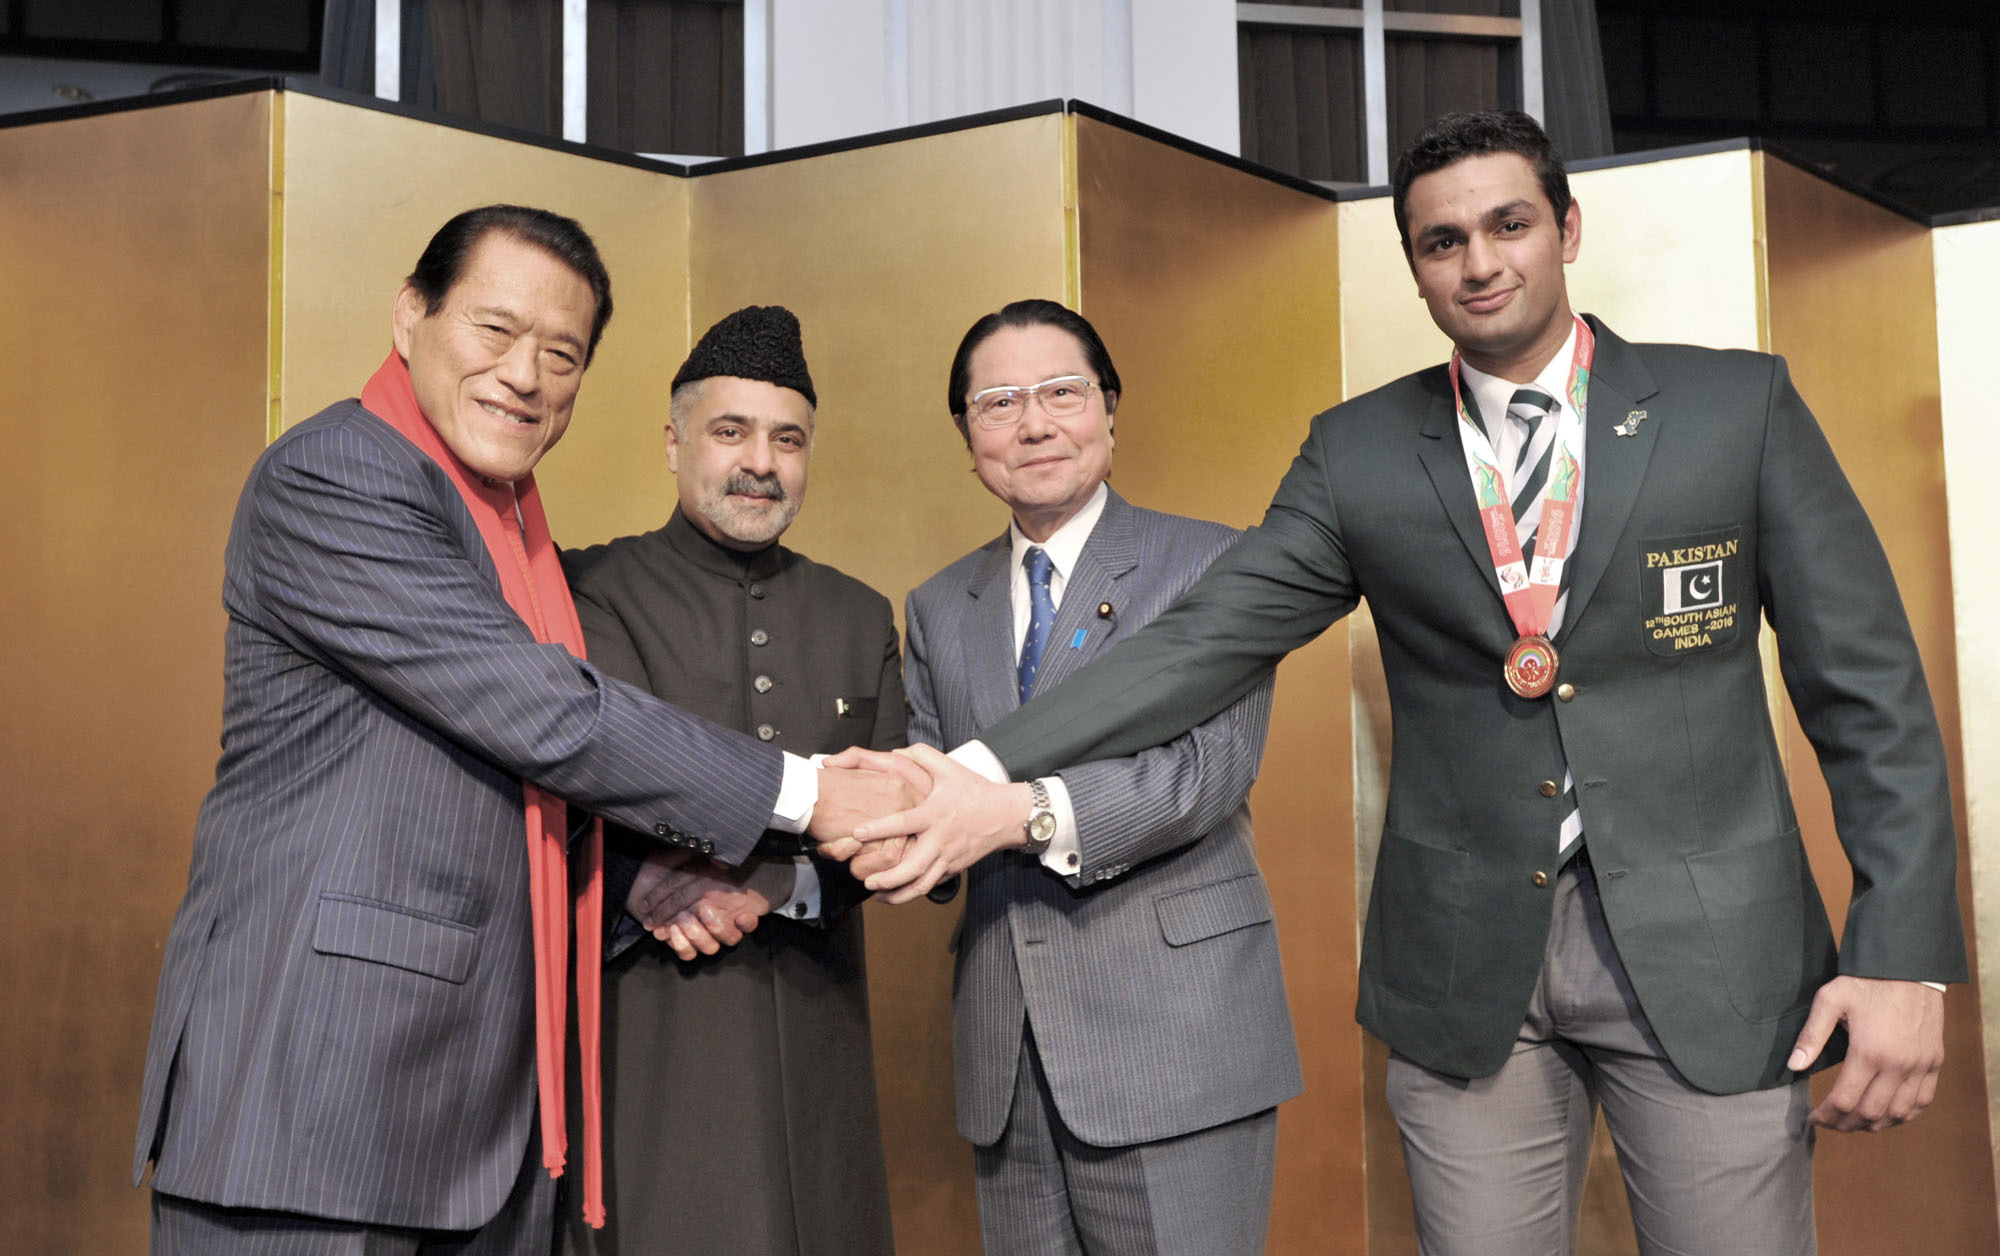 Pakistan Ambassador Farukh Amil (second from left) shakes hands  with, from left, House of Councillors member Antonio Inoki; President of the Japan-Pakistan Parliamentarians' Friendship League Seishiro Eto; and judoka Shah Hussain, a Tsukuba University student and a member of the Pakistan National Judo Team, during a reception to celebrate the country's National Day at the New Otani Hotel in Tokyo on March 23. | YOSHIAKI MIURA